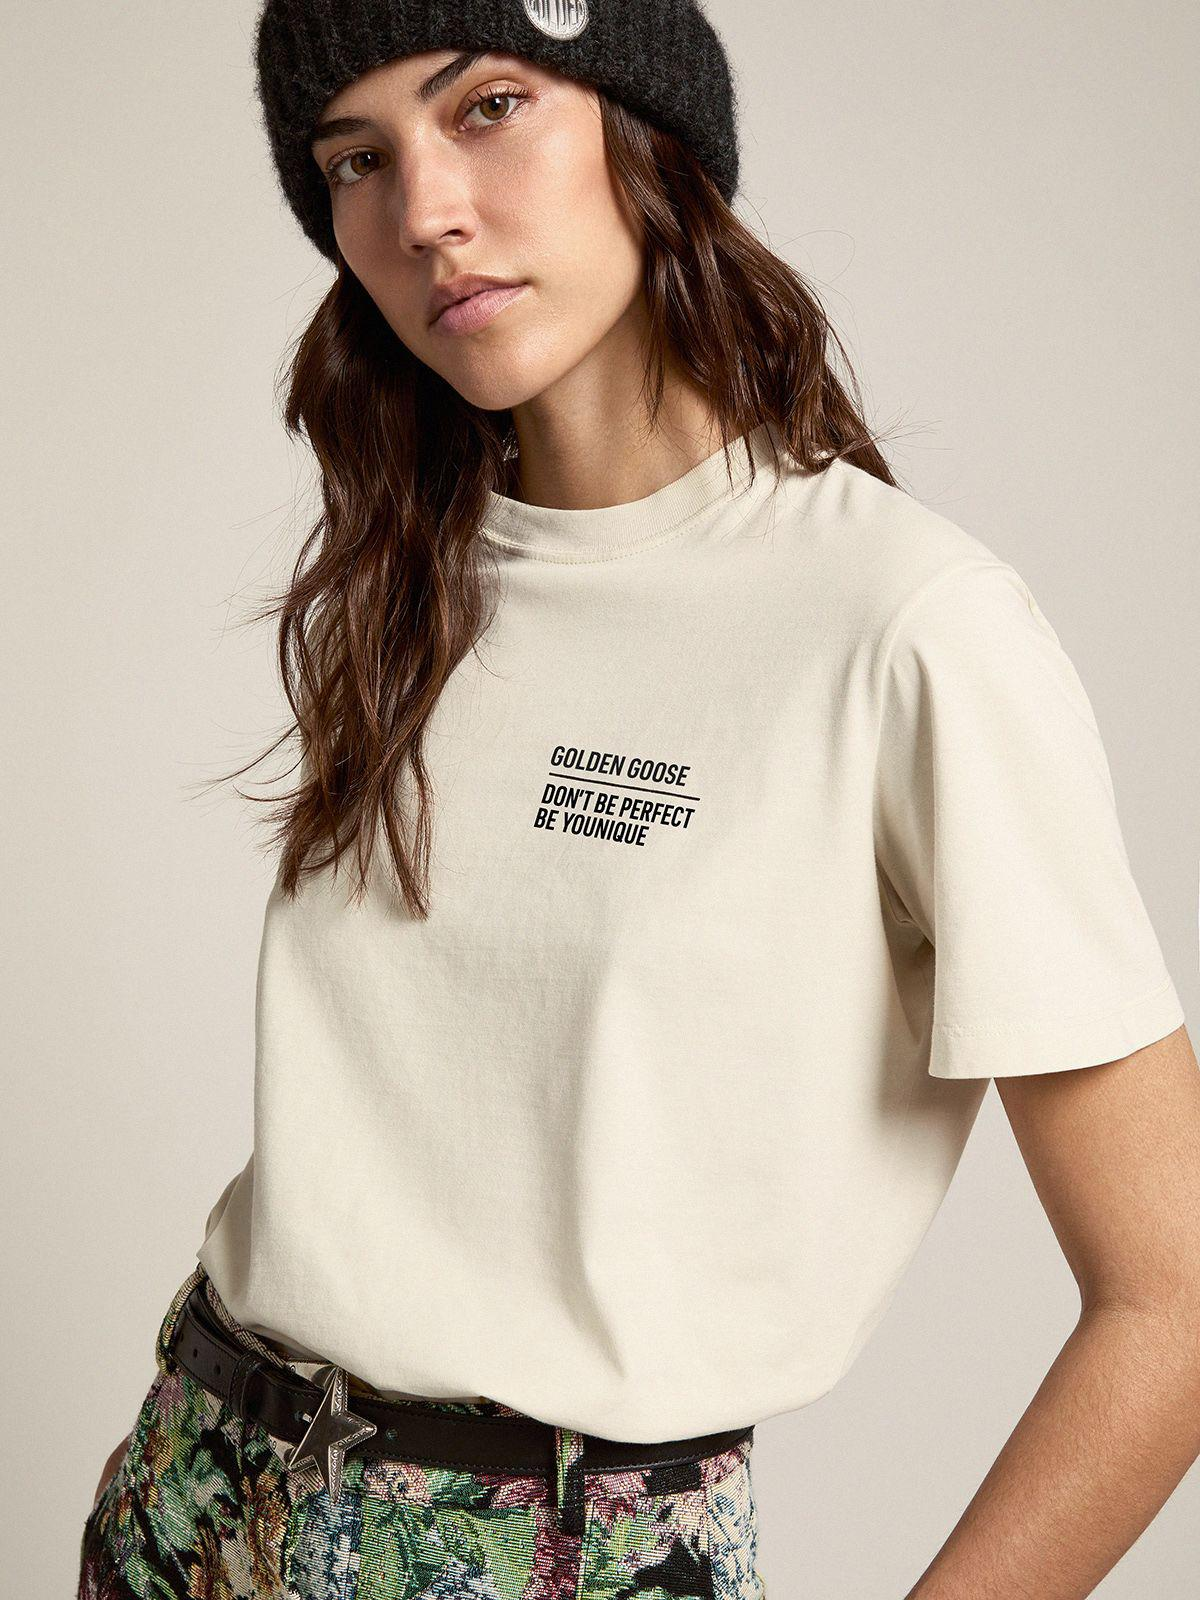 Bone white Journey Collection T-shirt with contrasting black logo and lettering on the front